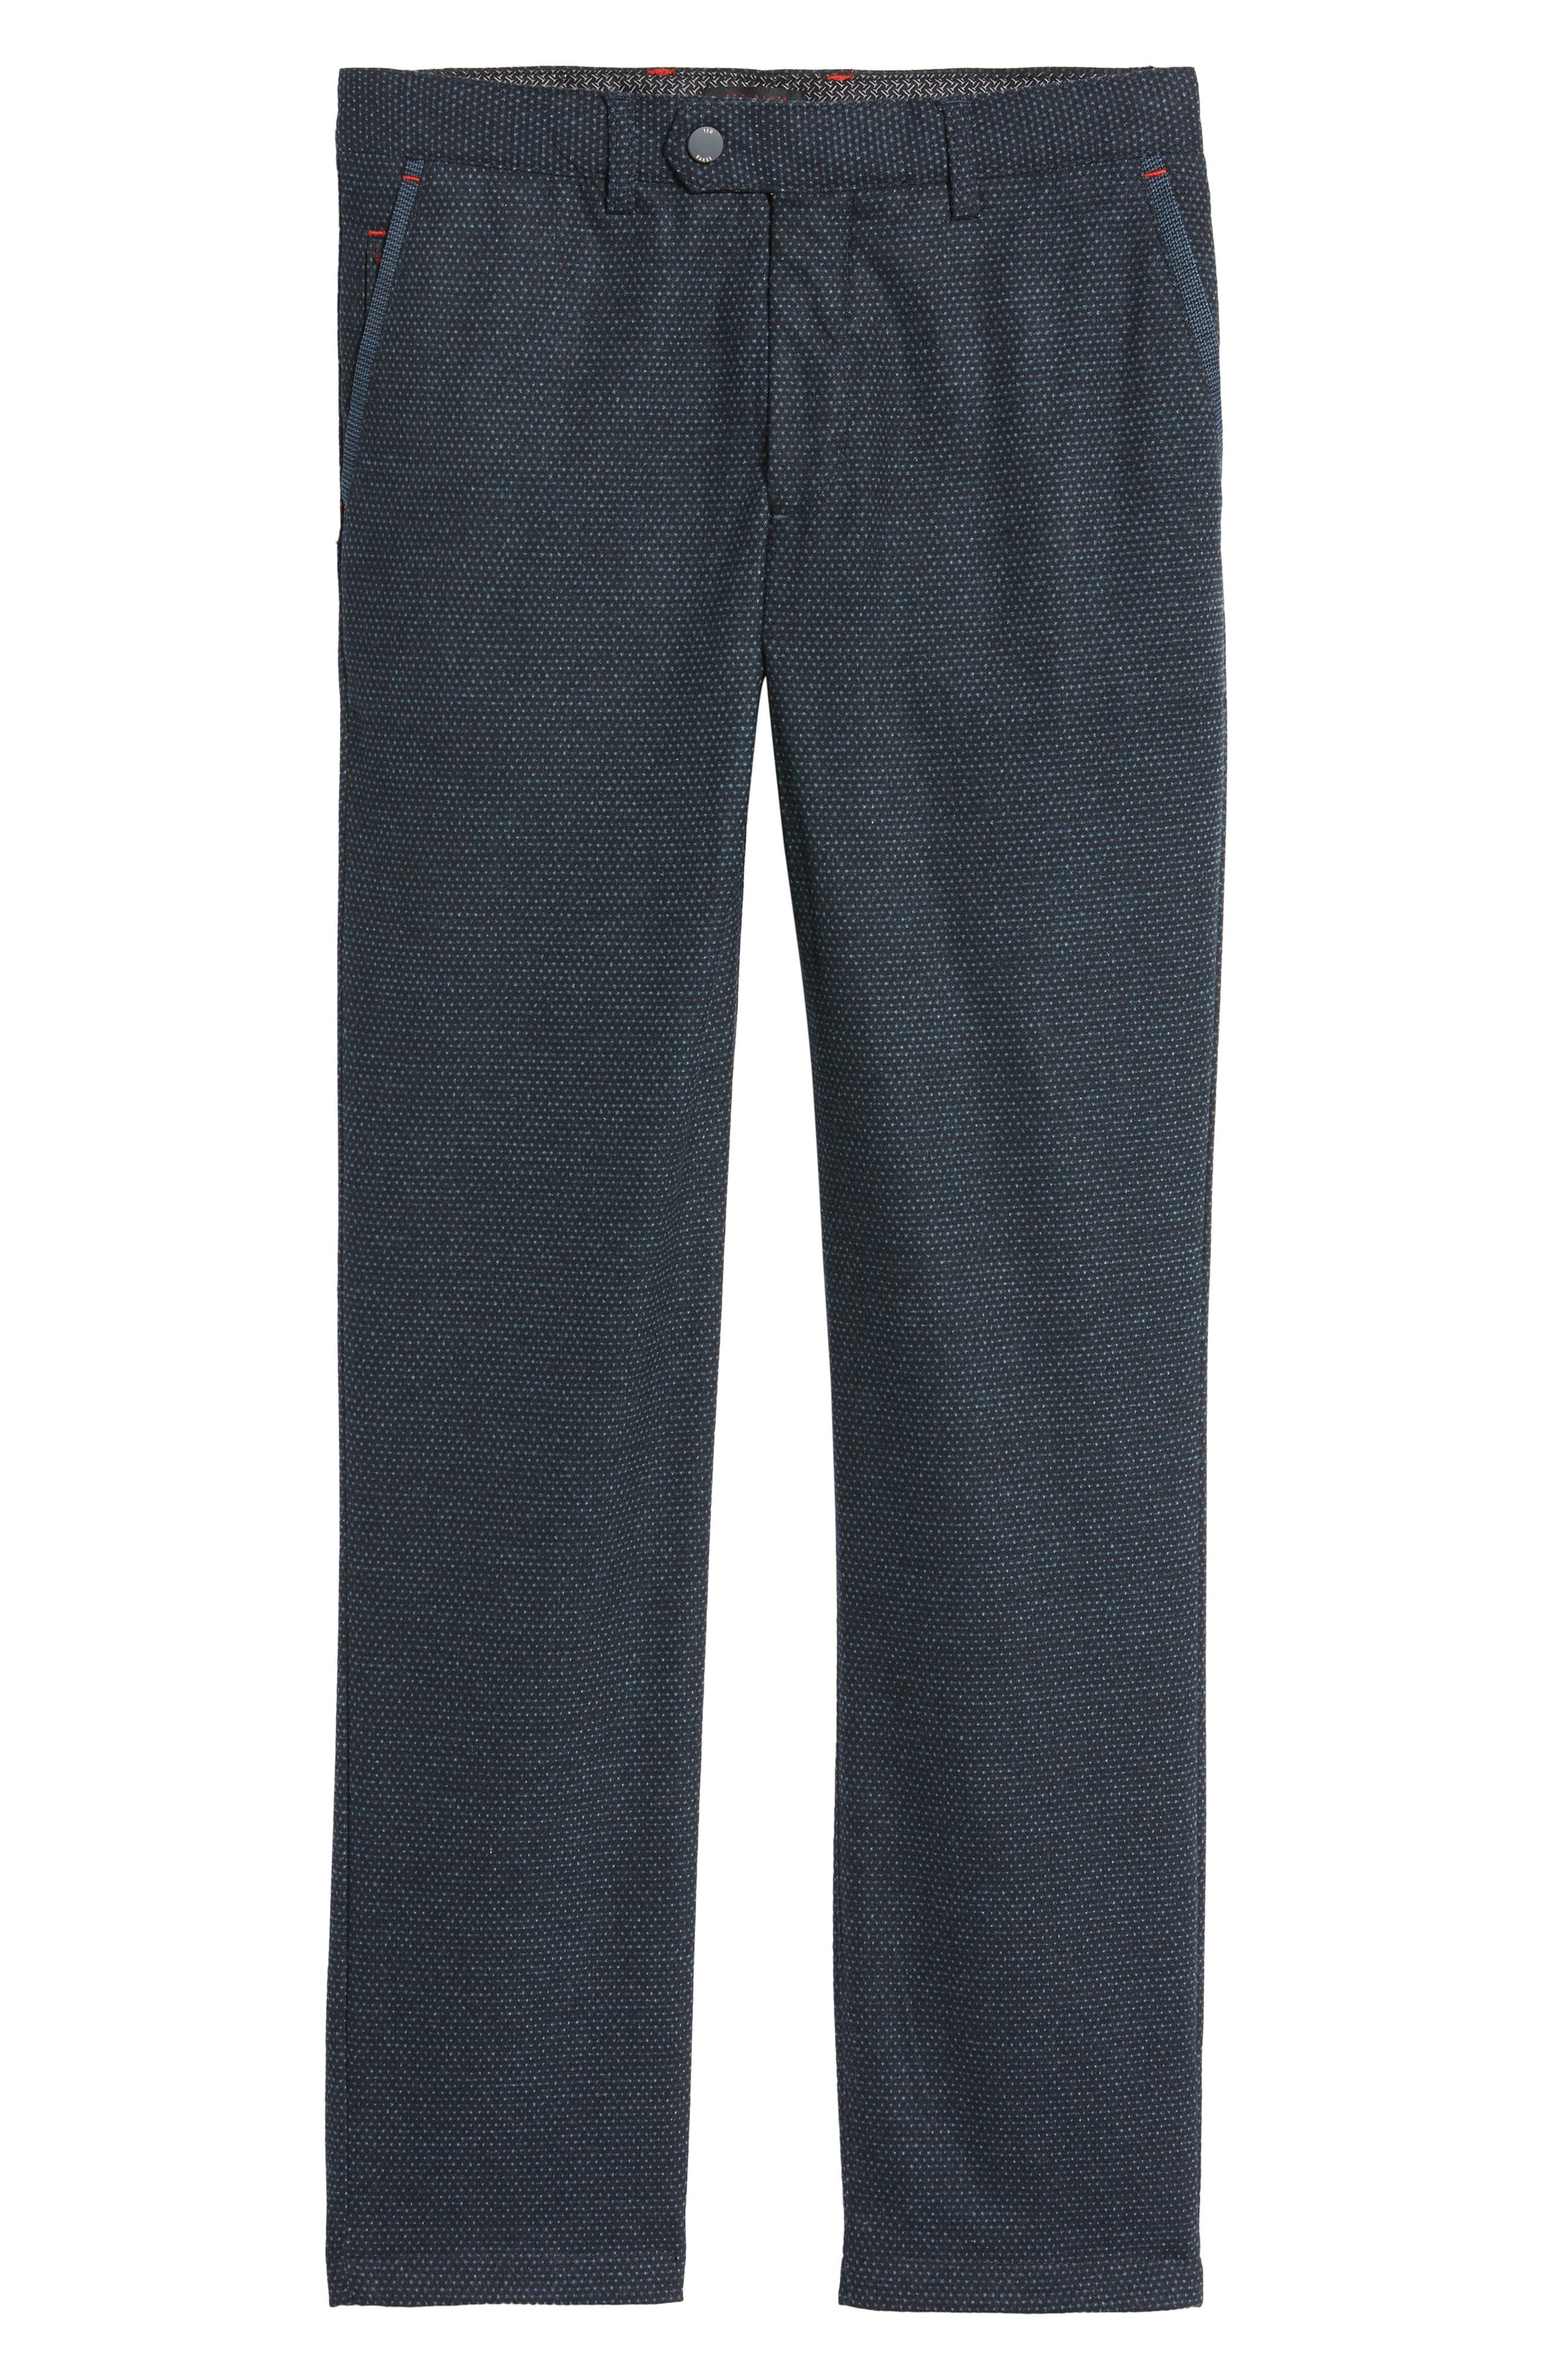 Alternate Image 5  - Ted Baker London Water Resistant Golf Trousers